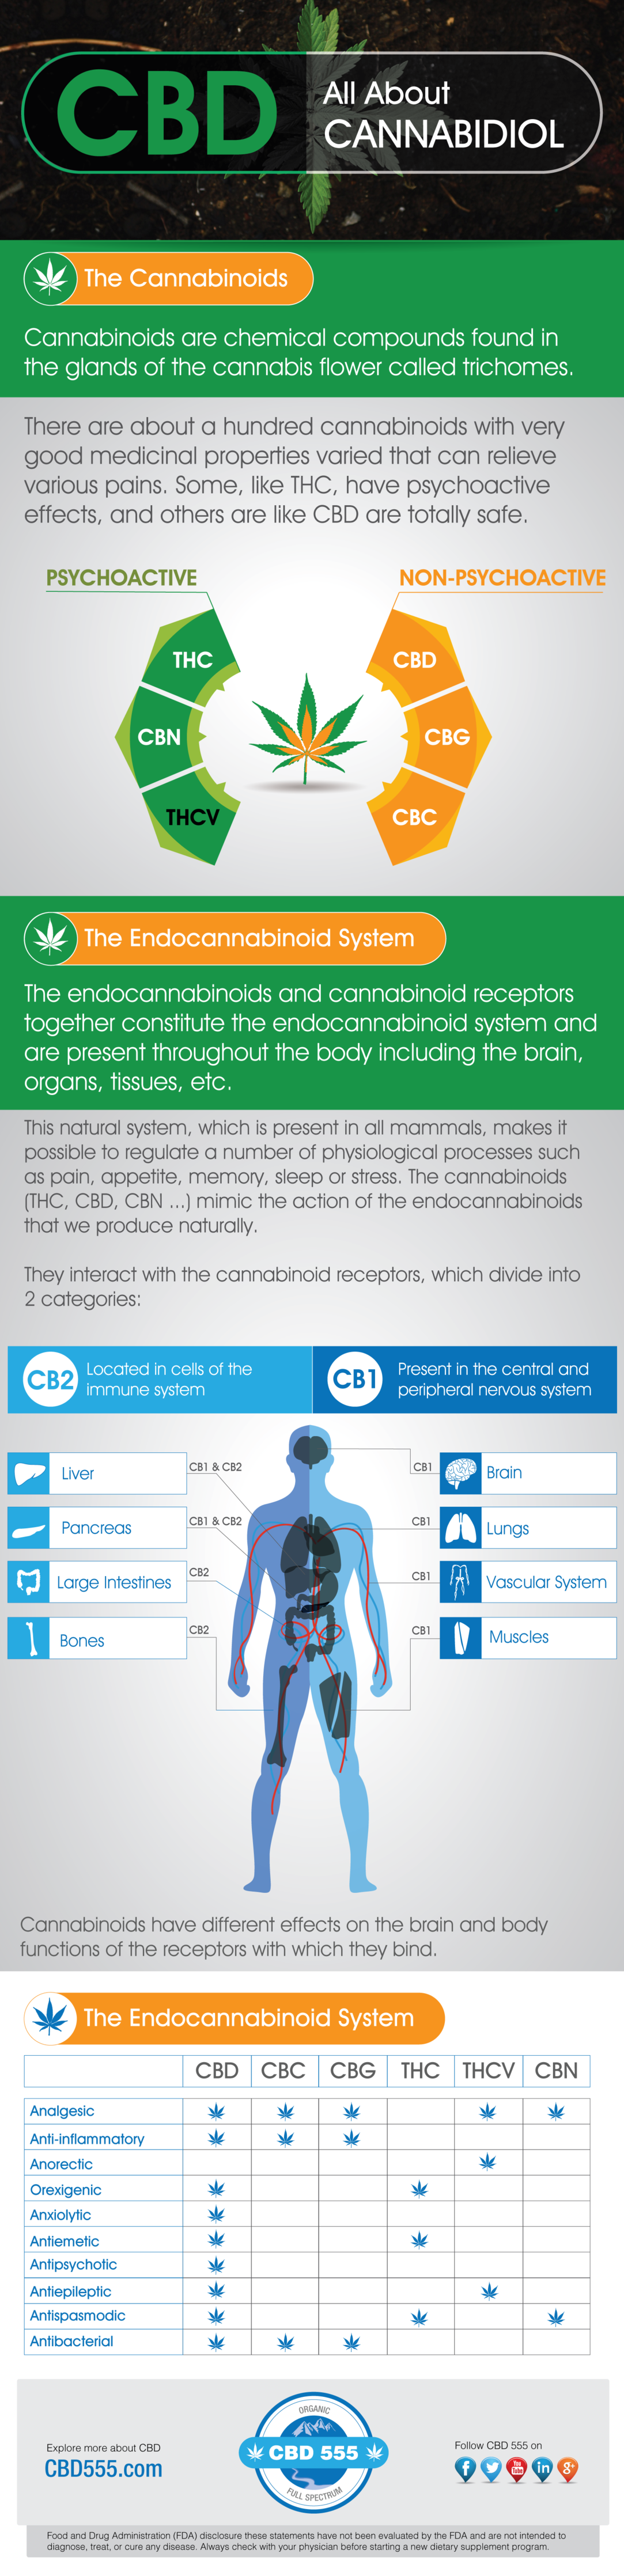 Demystifying Cannabidiol and Cannabinoids - Infographic